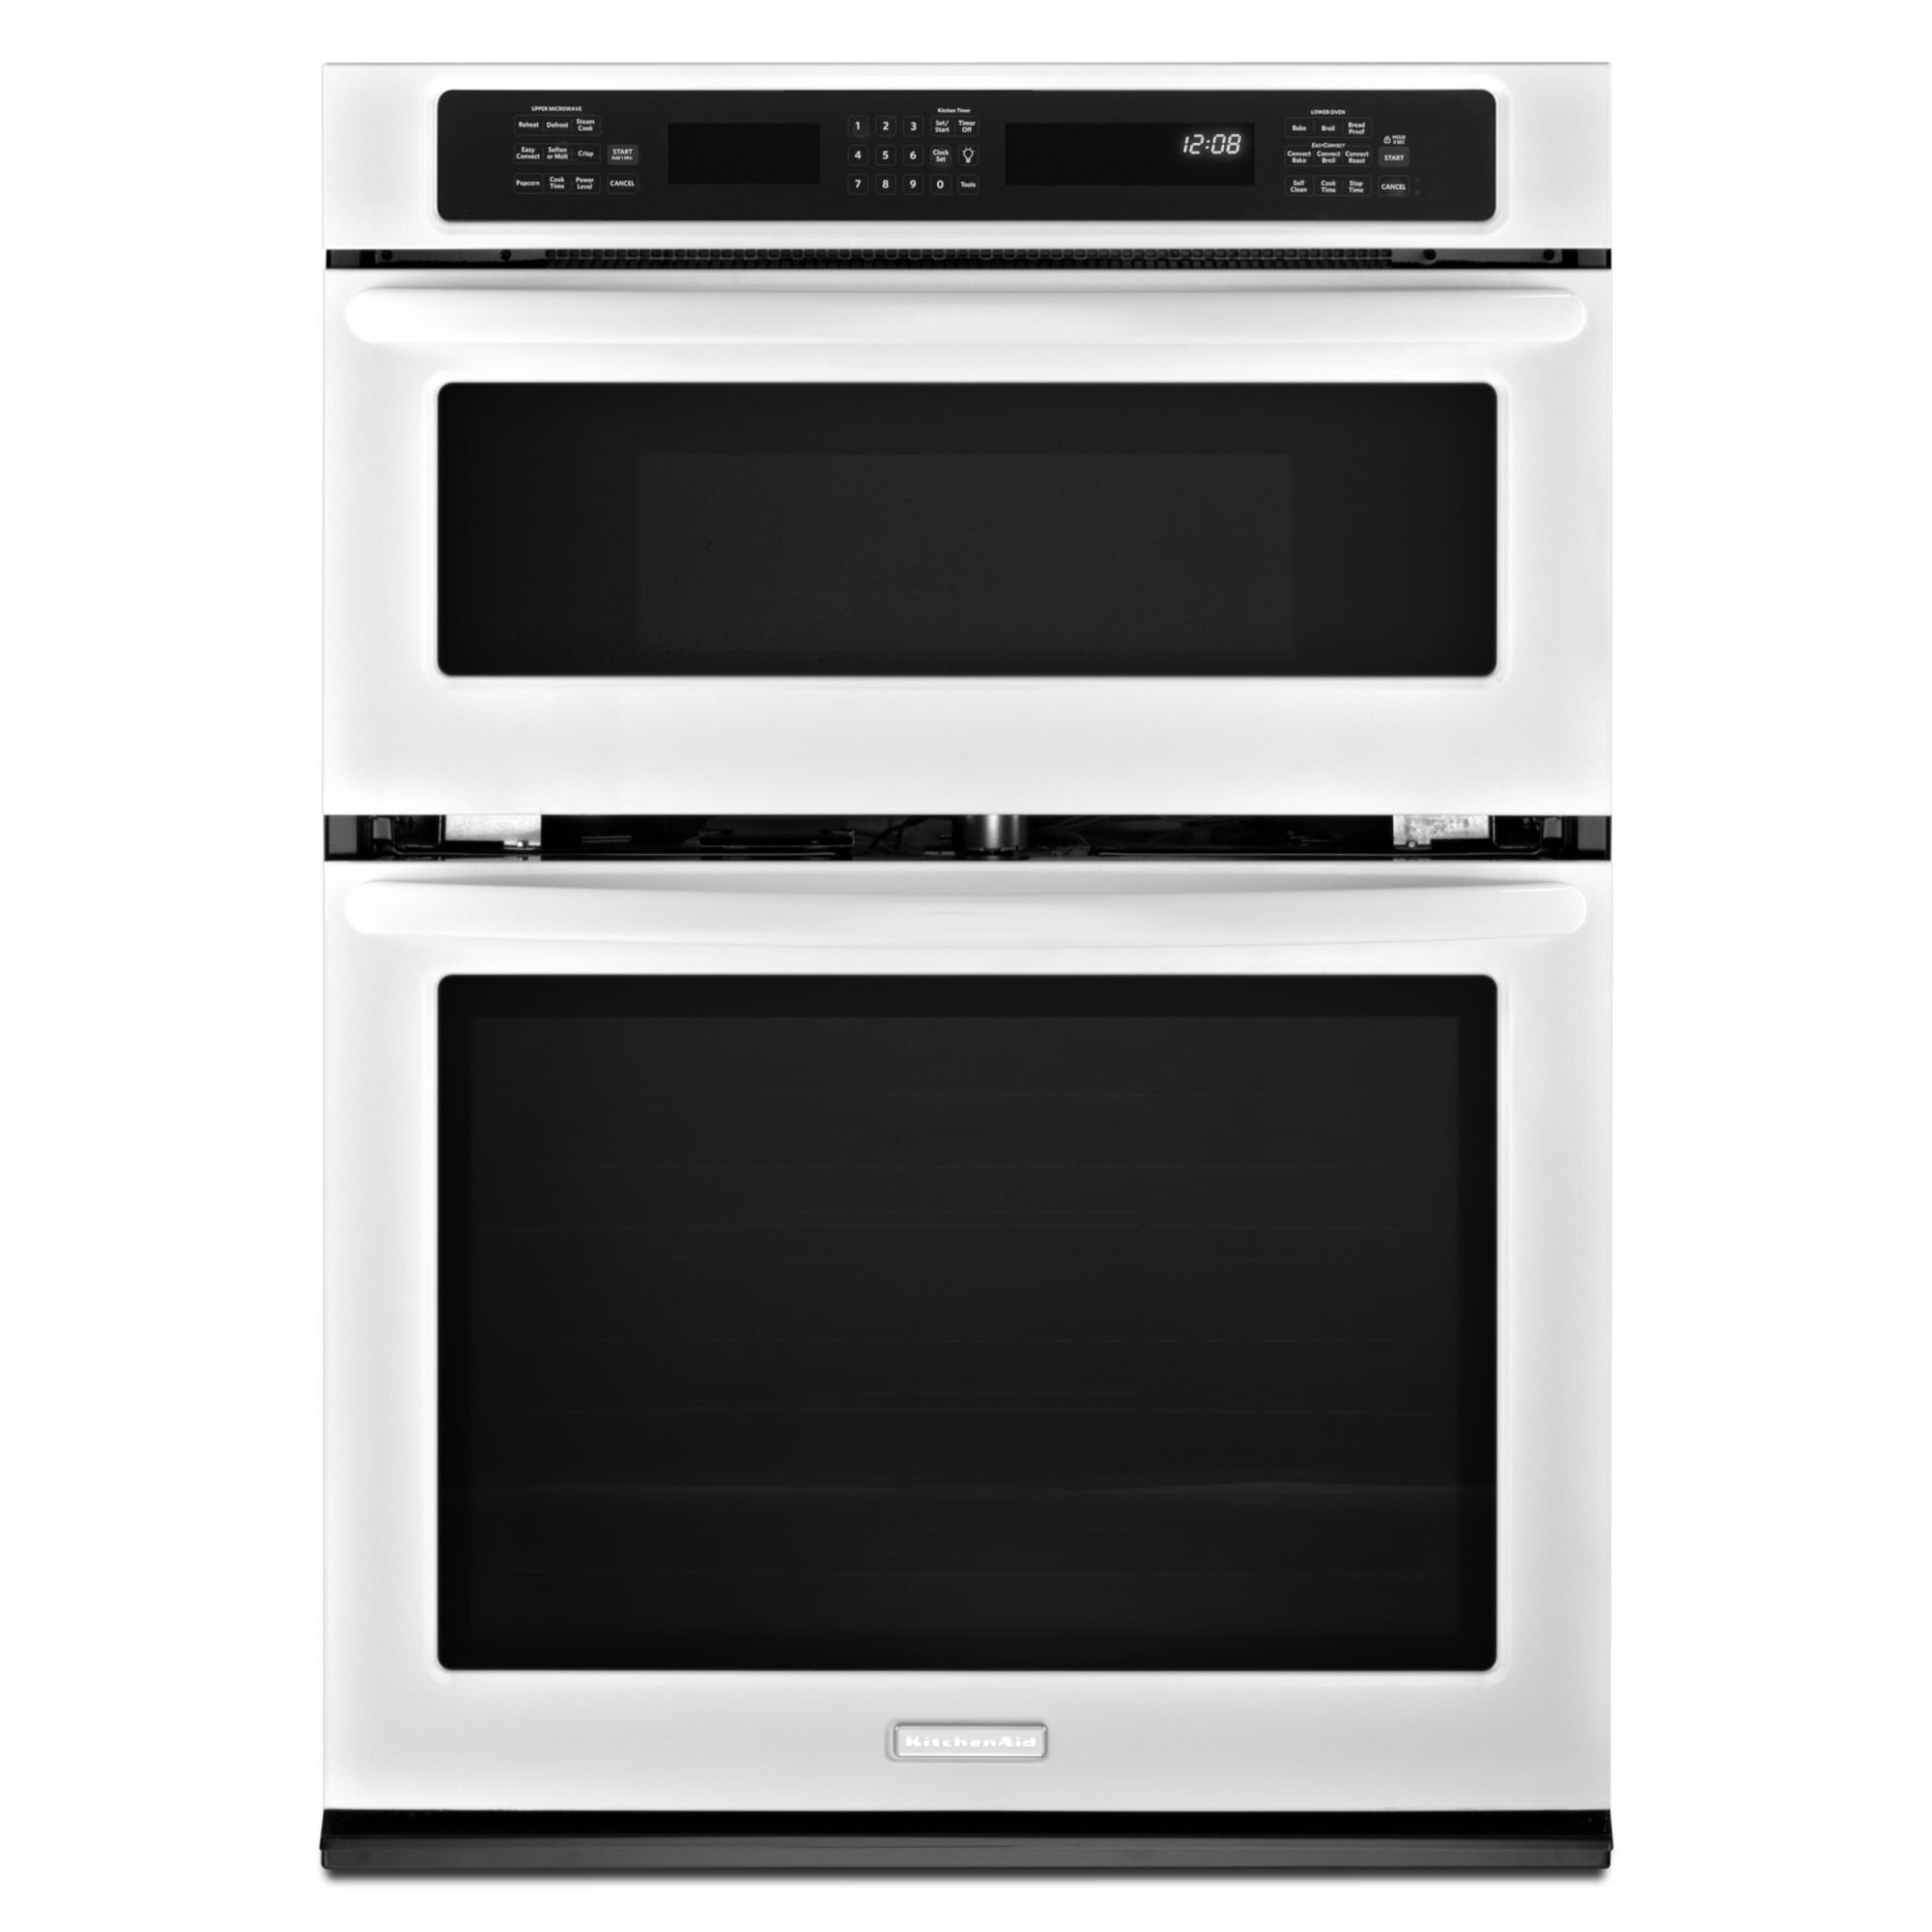 KitchenAid 27 Built-In Combination Wall Oven w/ Even-Heat™ True Convection Lower Oven - White